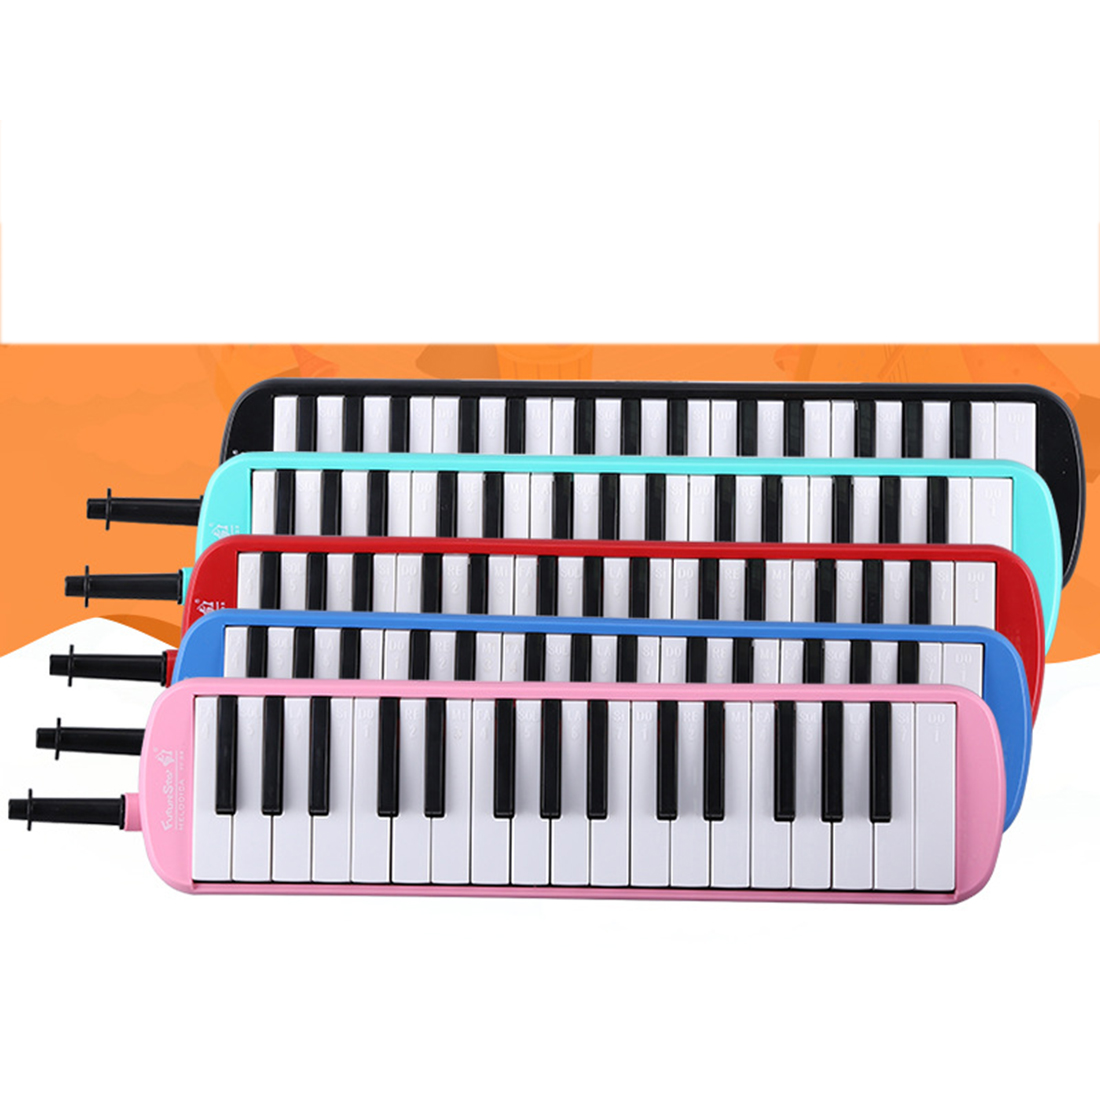 <font><b>32</b></font> <font><b>Keys</b></font> <font><b>Melodica</b></font> Piano Style Pianica Musical Education Instrument Educational Toy Gift For Children Kids - Red Pink Green Blue image